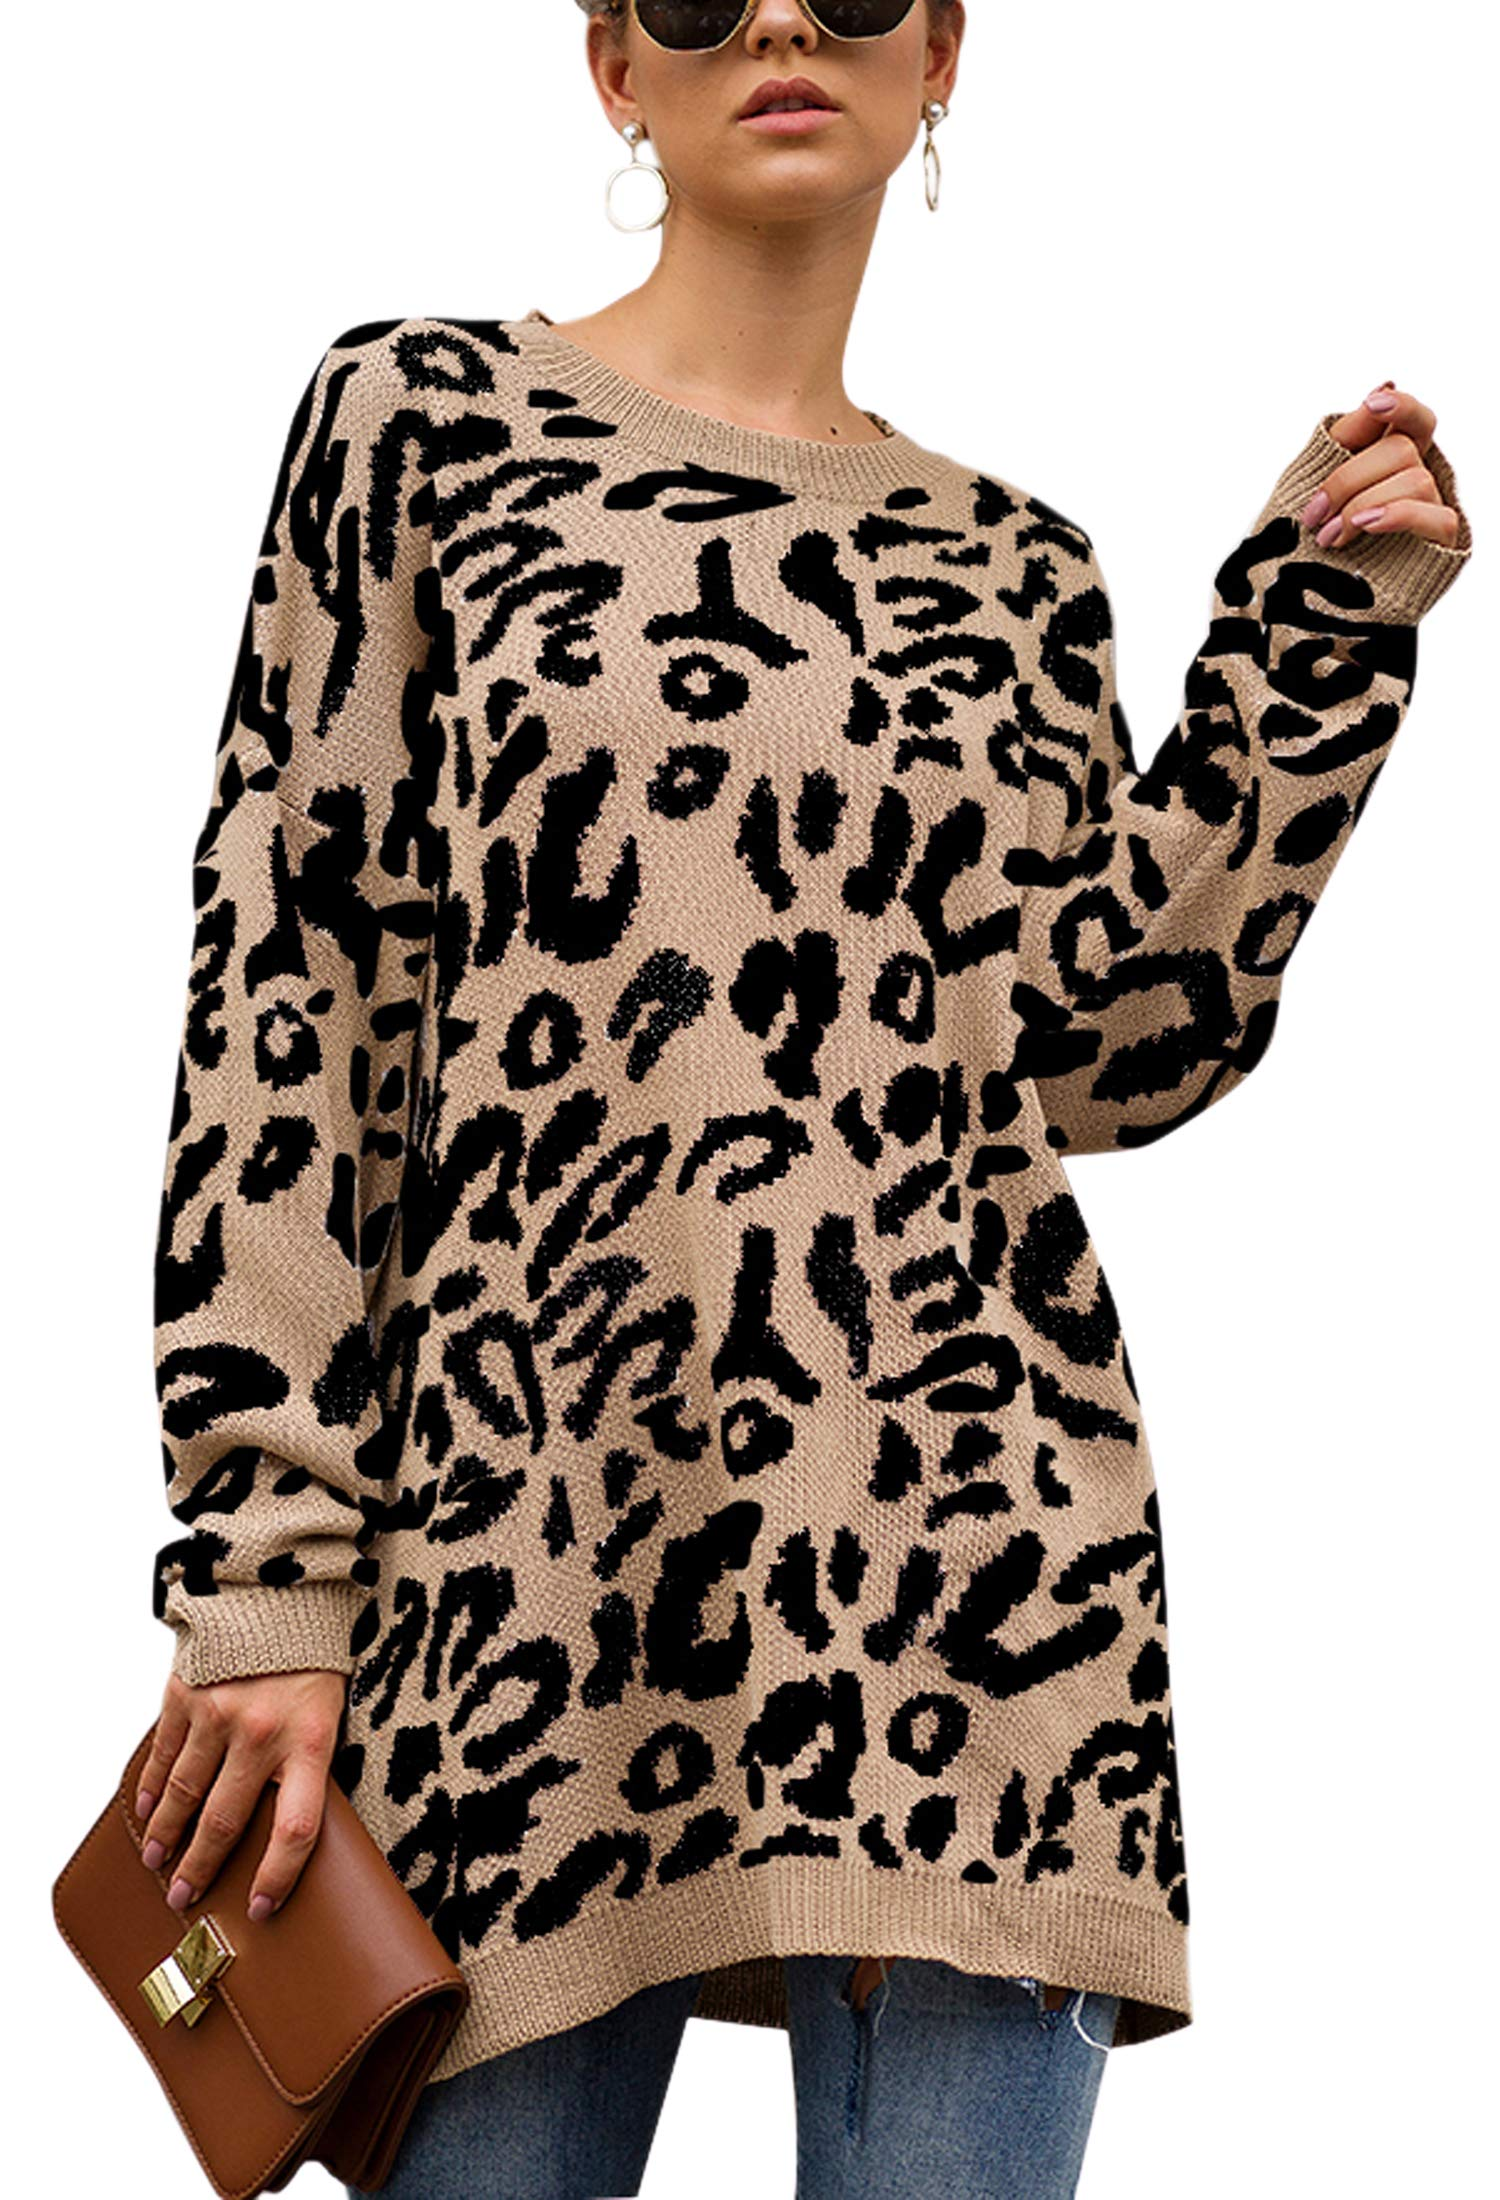 New Ladies Womens Leopard Print Long Sleeve Knitted Pullover Sweater Jumper Top